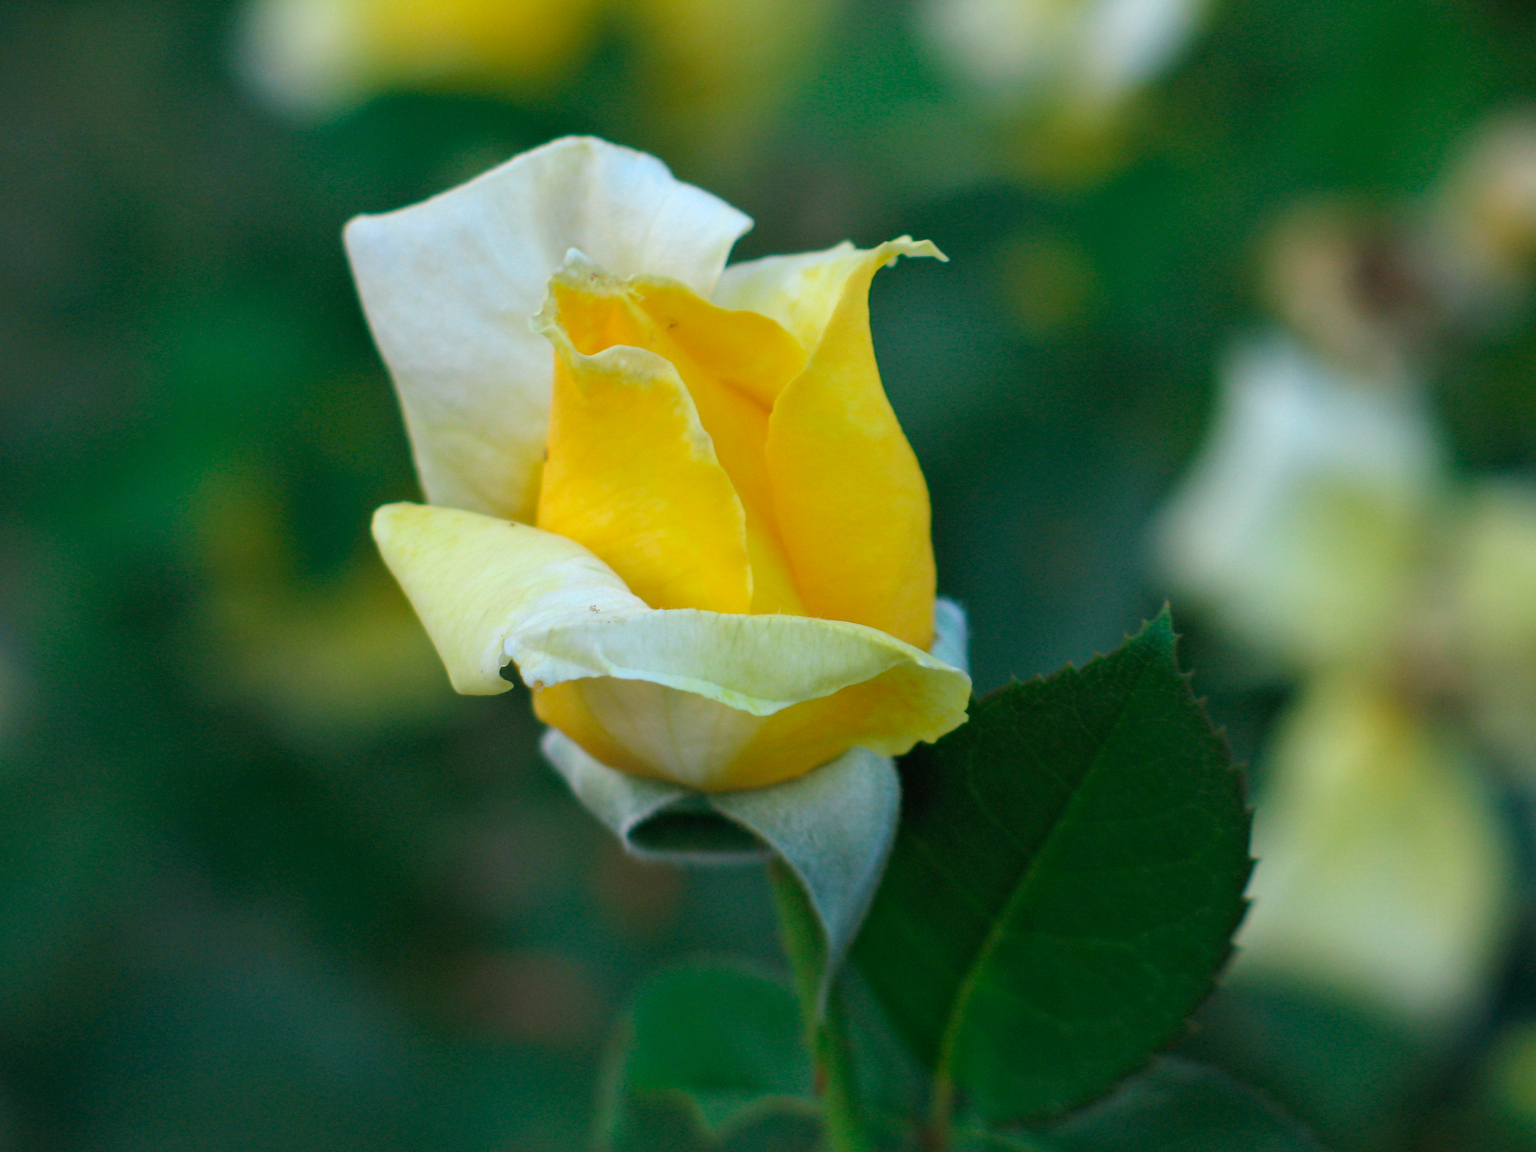 extreme closeup, Richard Lund, Single Yellow Rose